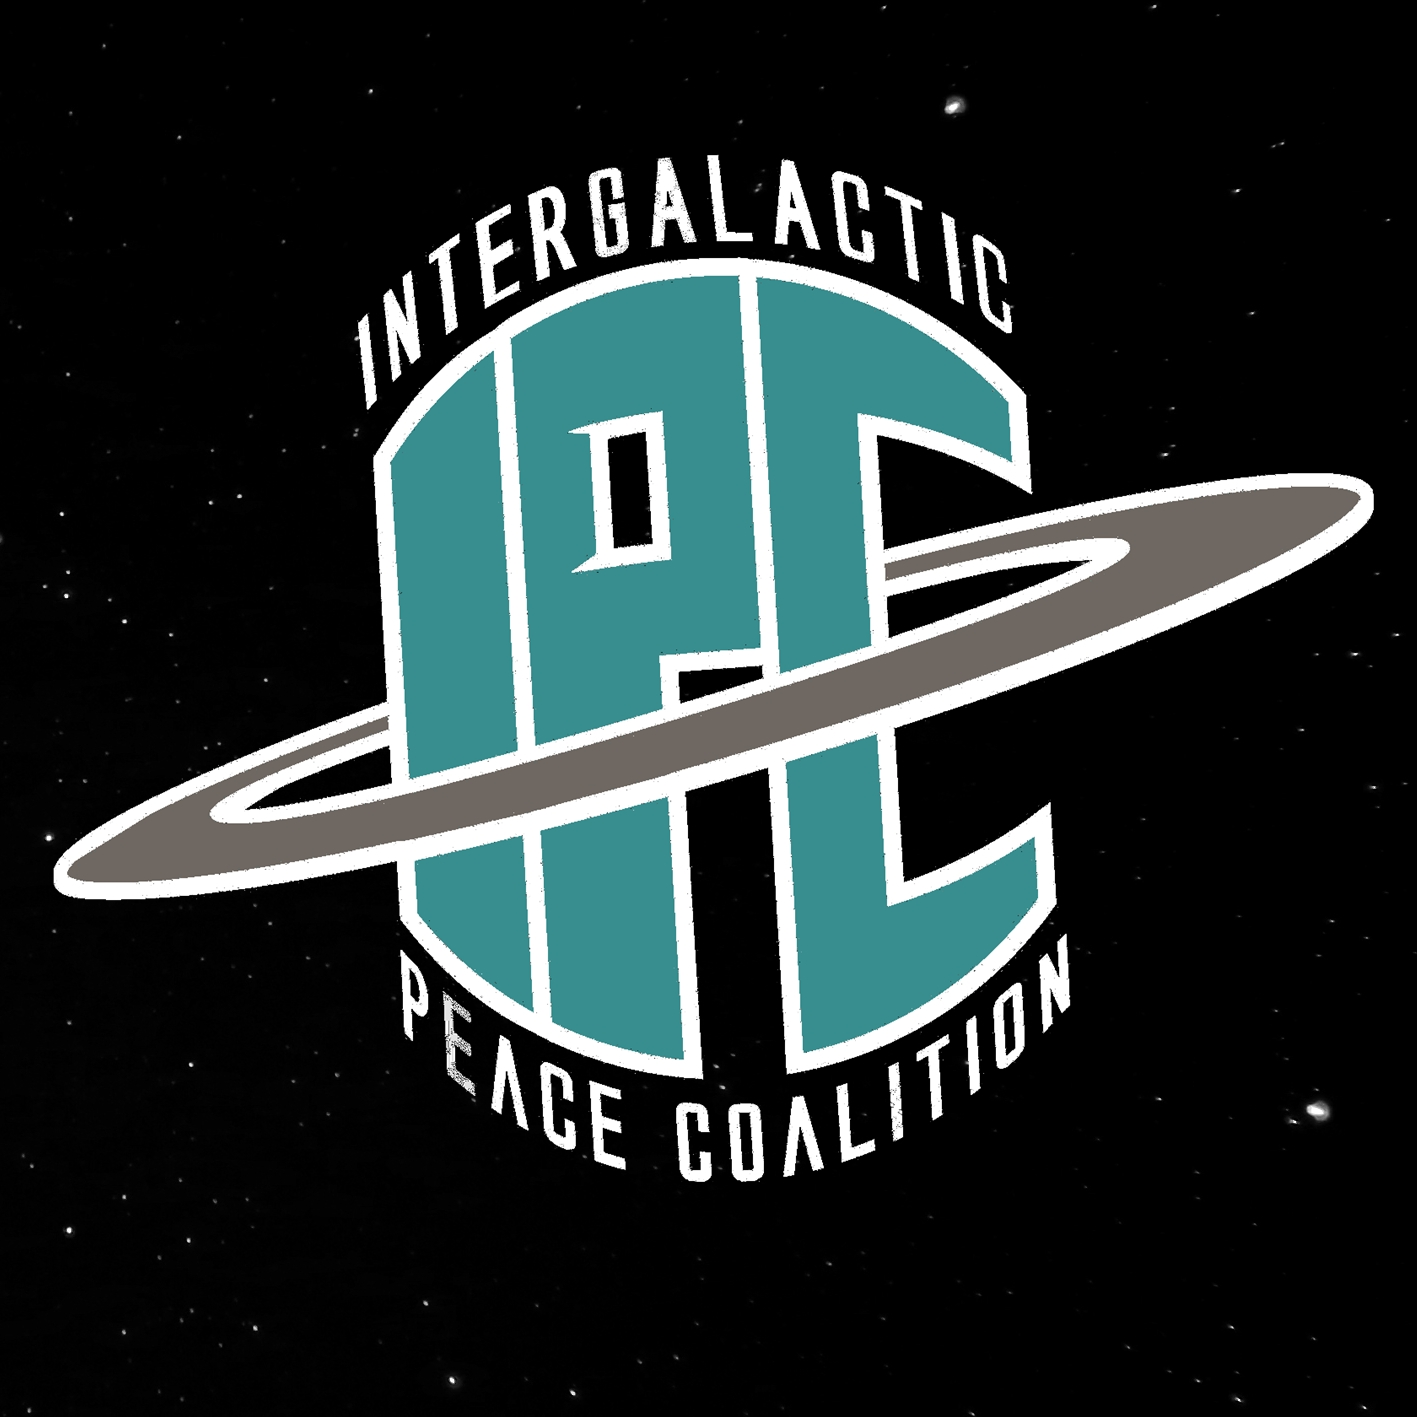 The Intergalactic Peace Coalition Podcast | IPC